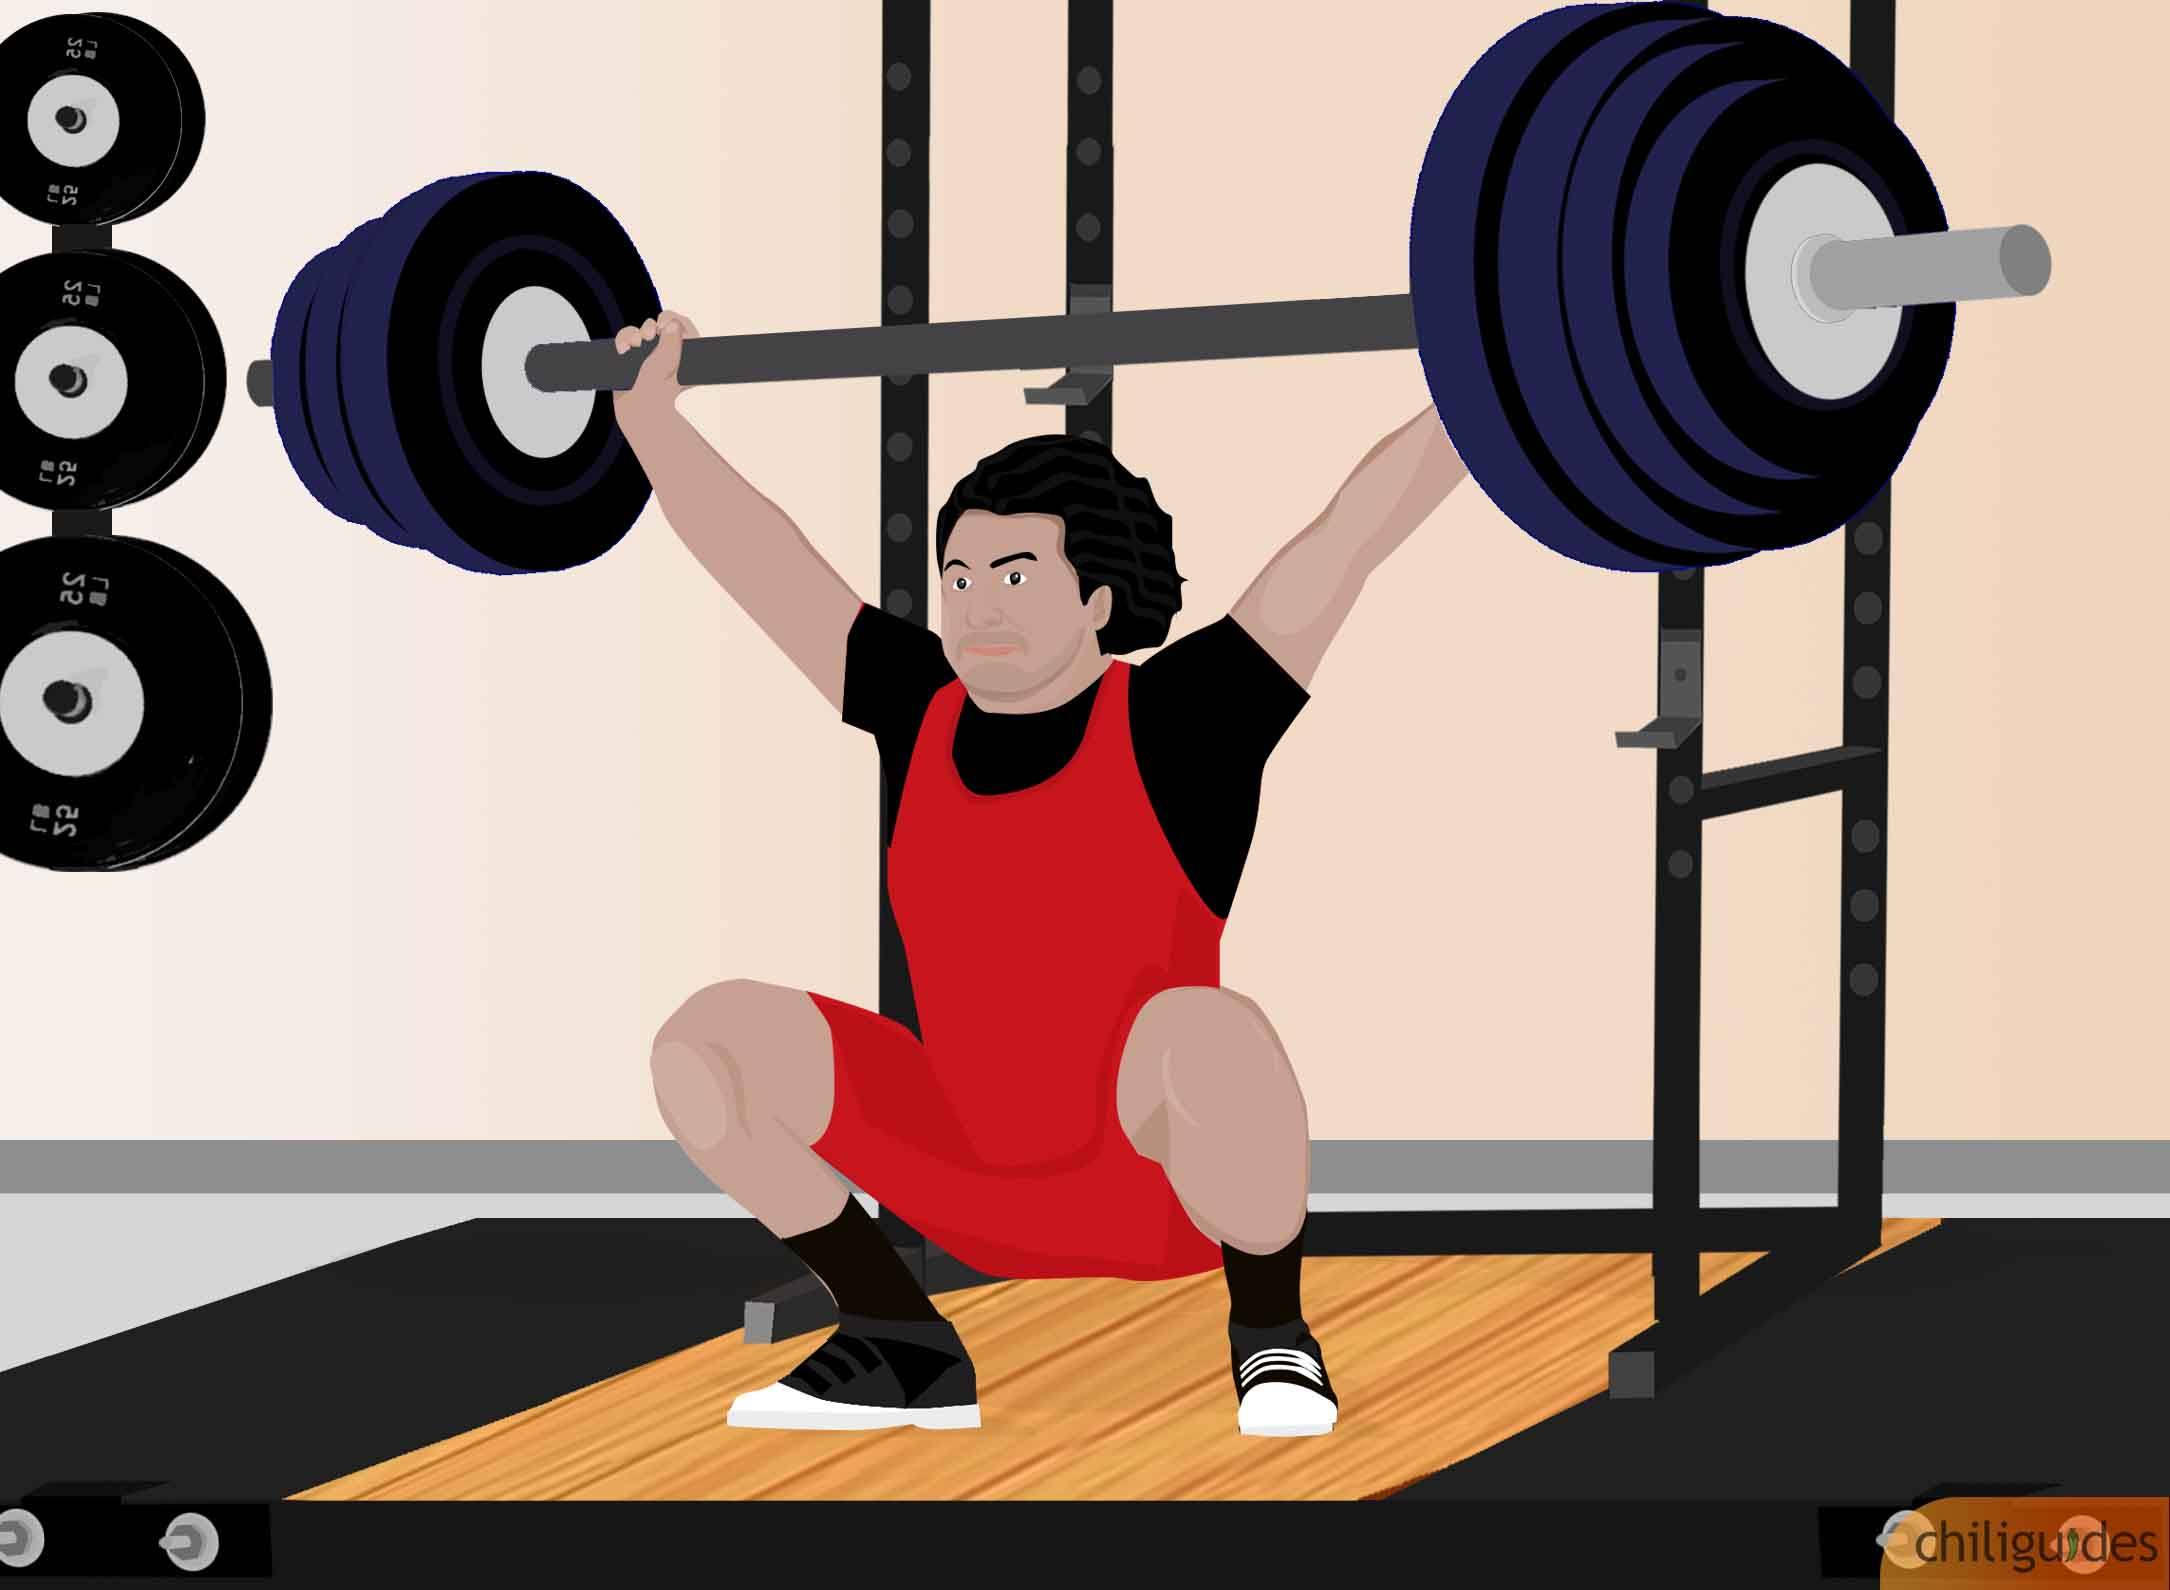 <p><b>Get a barbell with bearings instead of bushings for weightlifting.</b></p>